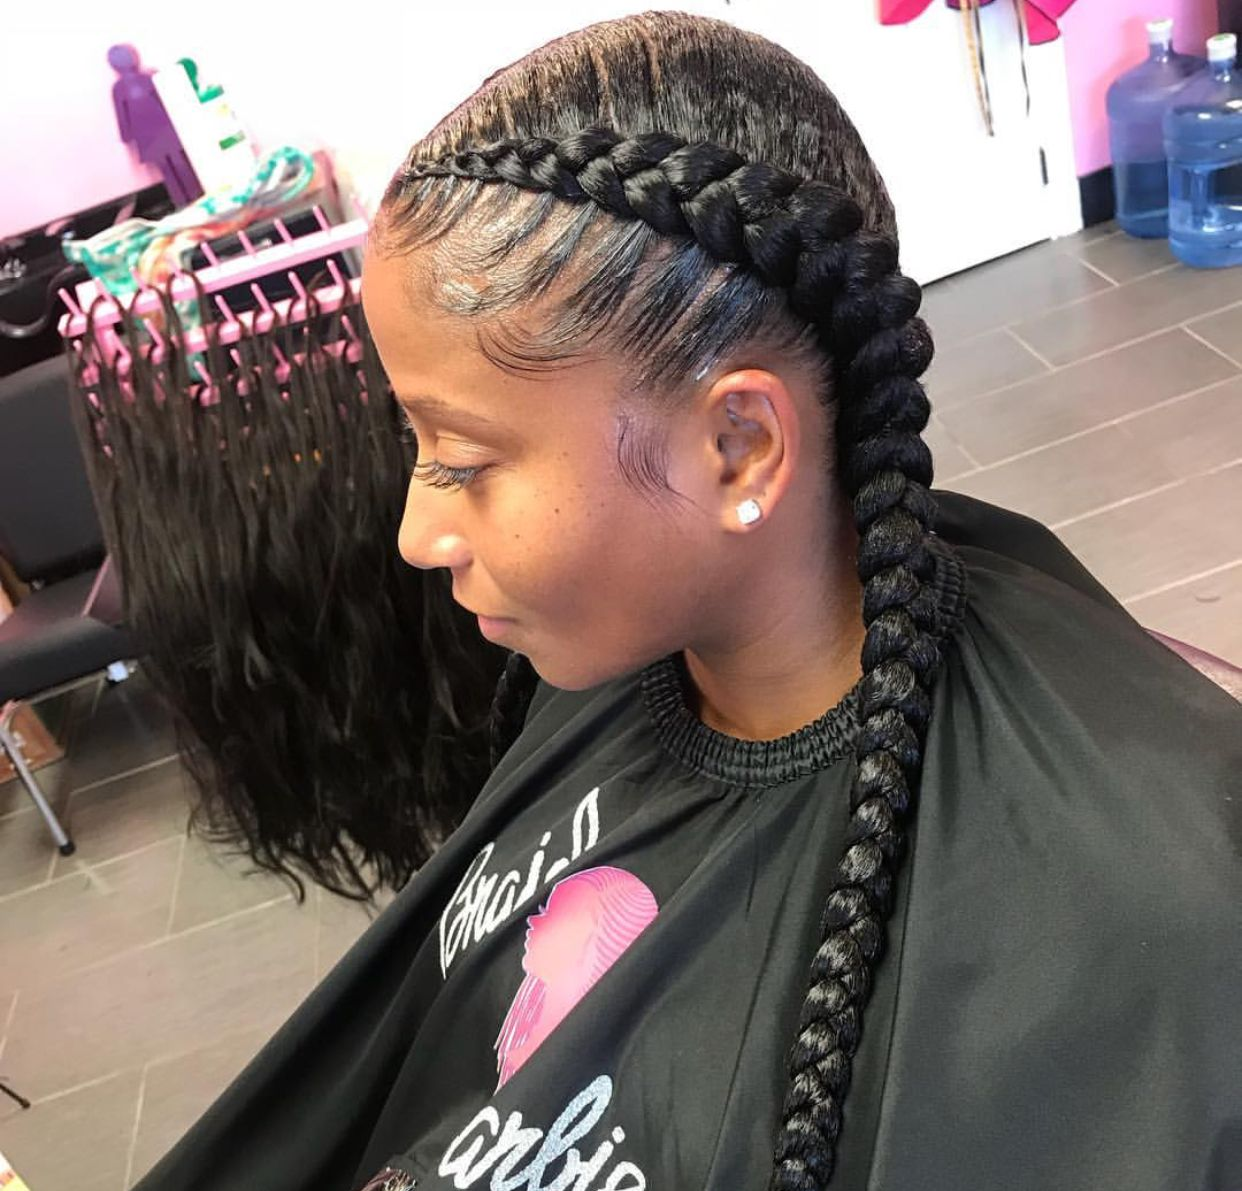 Pin Shesoglorious Fw My Page For More Live Pins Two Braid Hairstyles French Braid Hairstyles Braided Hairstyles